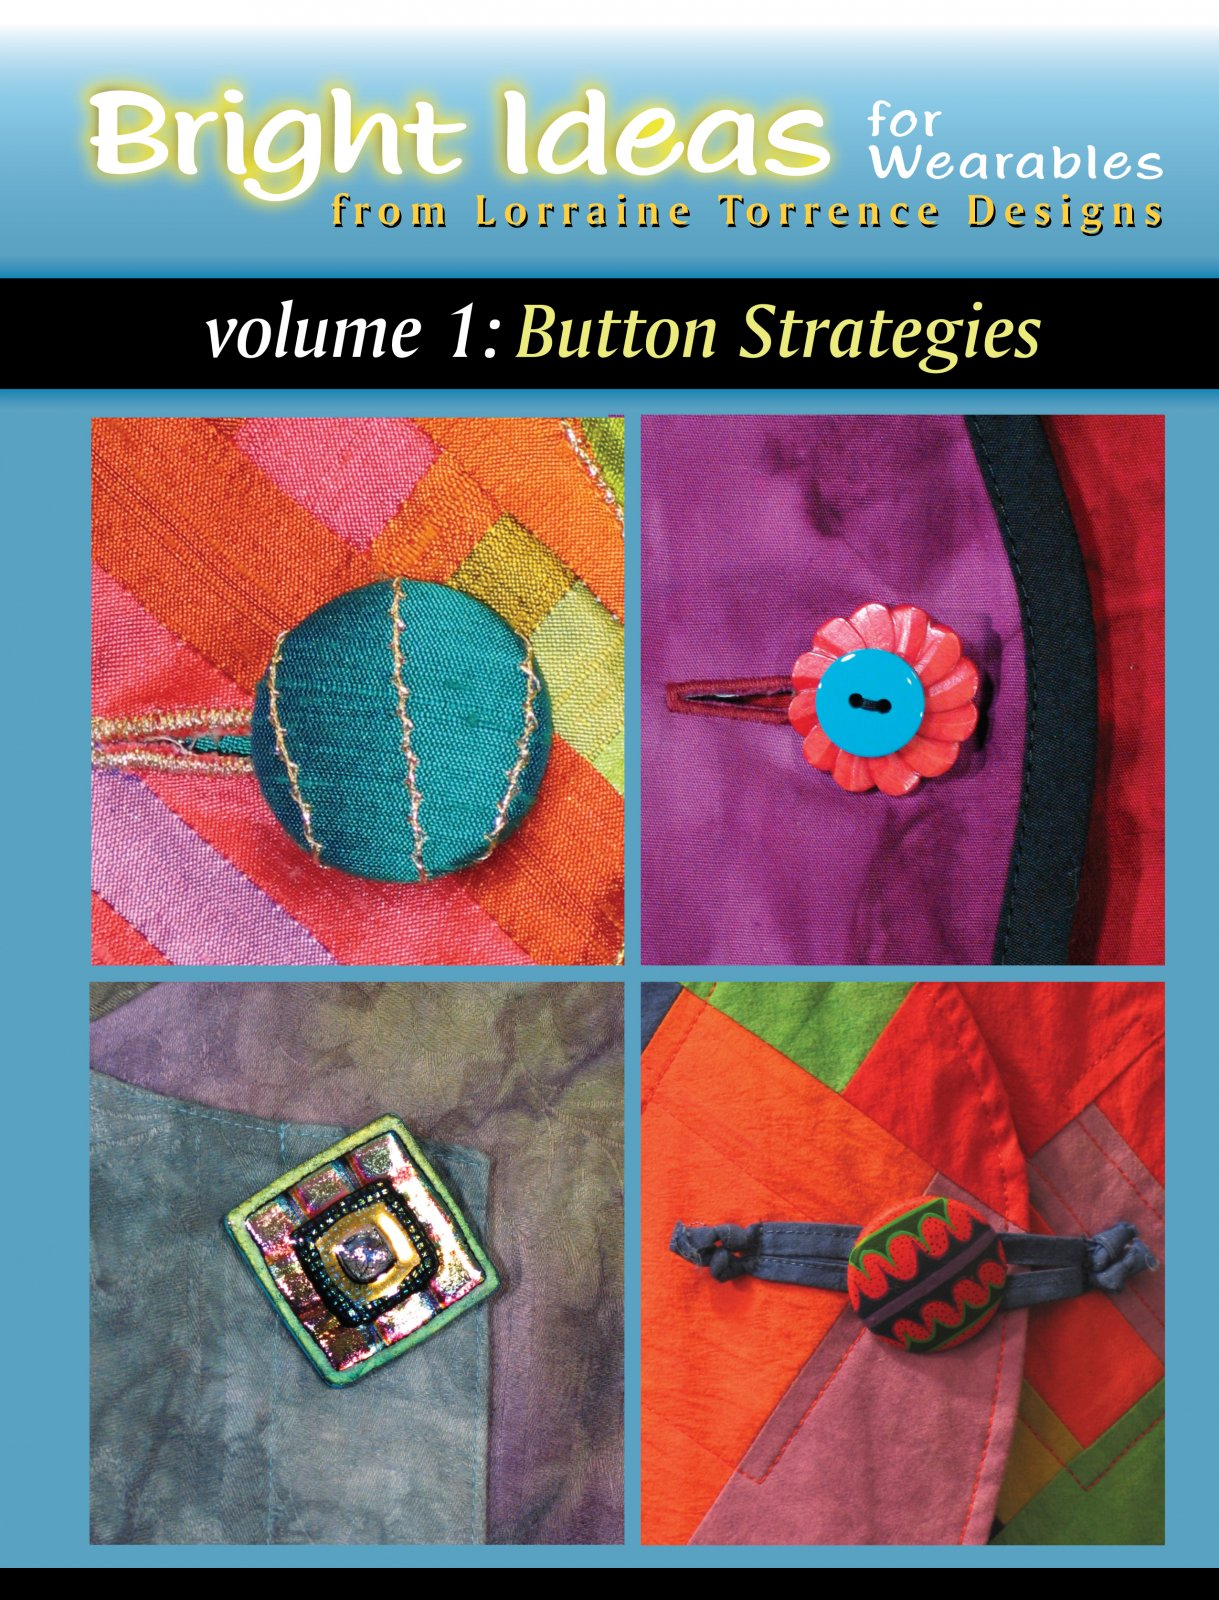 Bright Ideas for Wearables Vol 1: Button Strategies